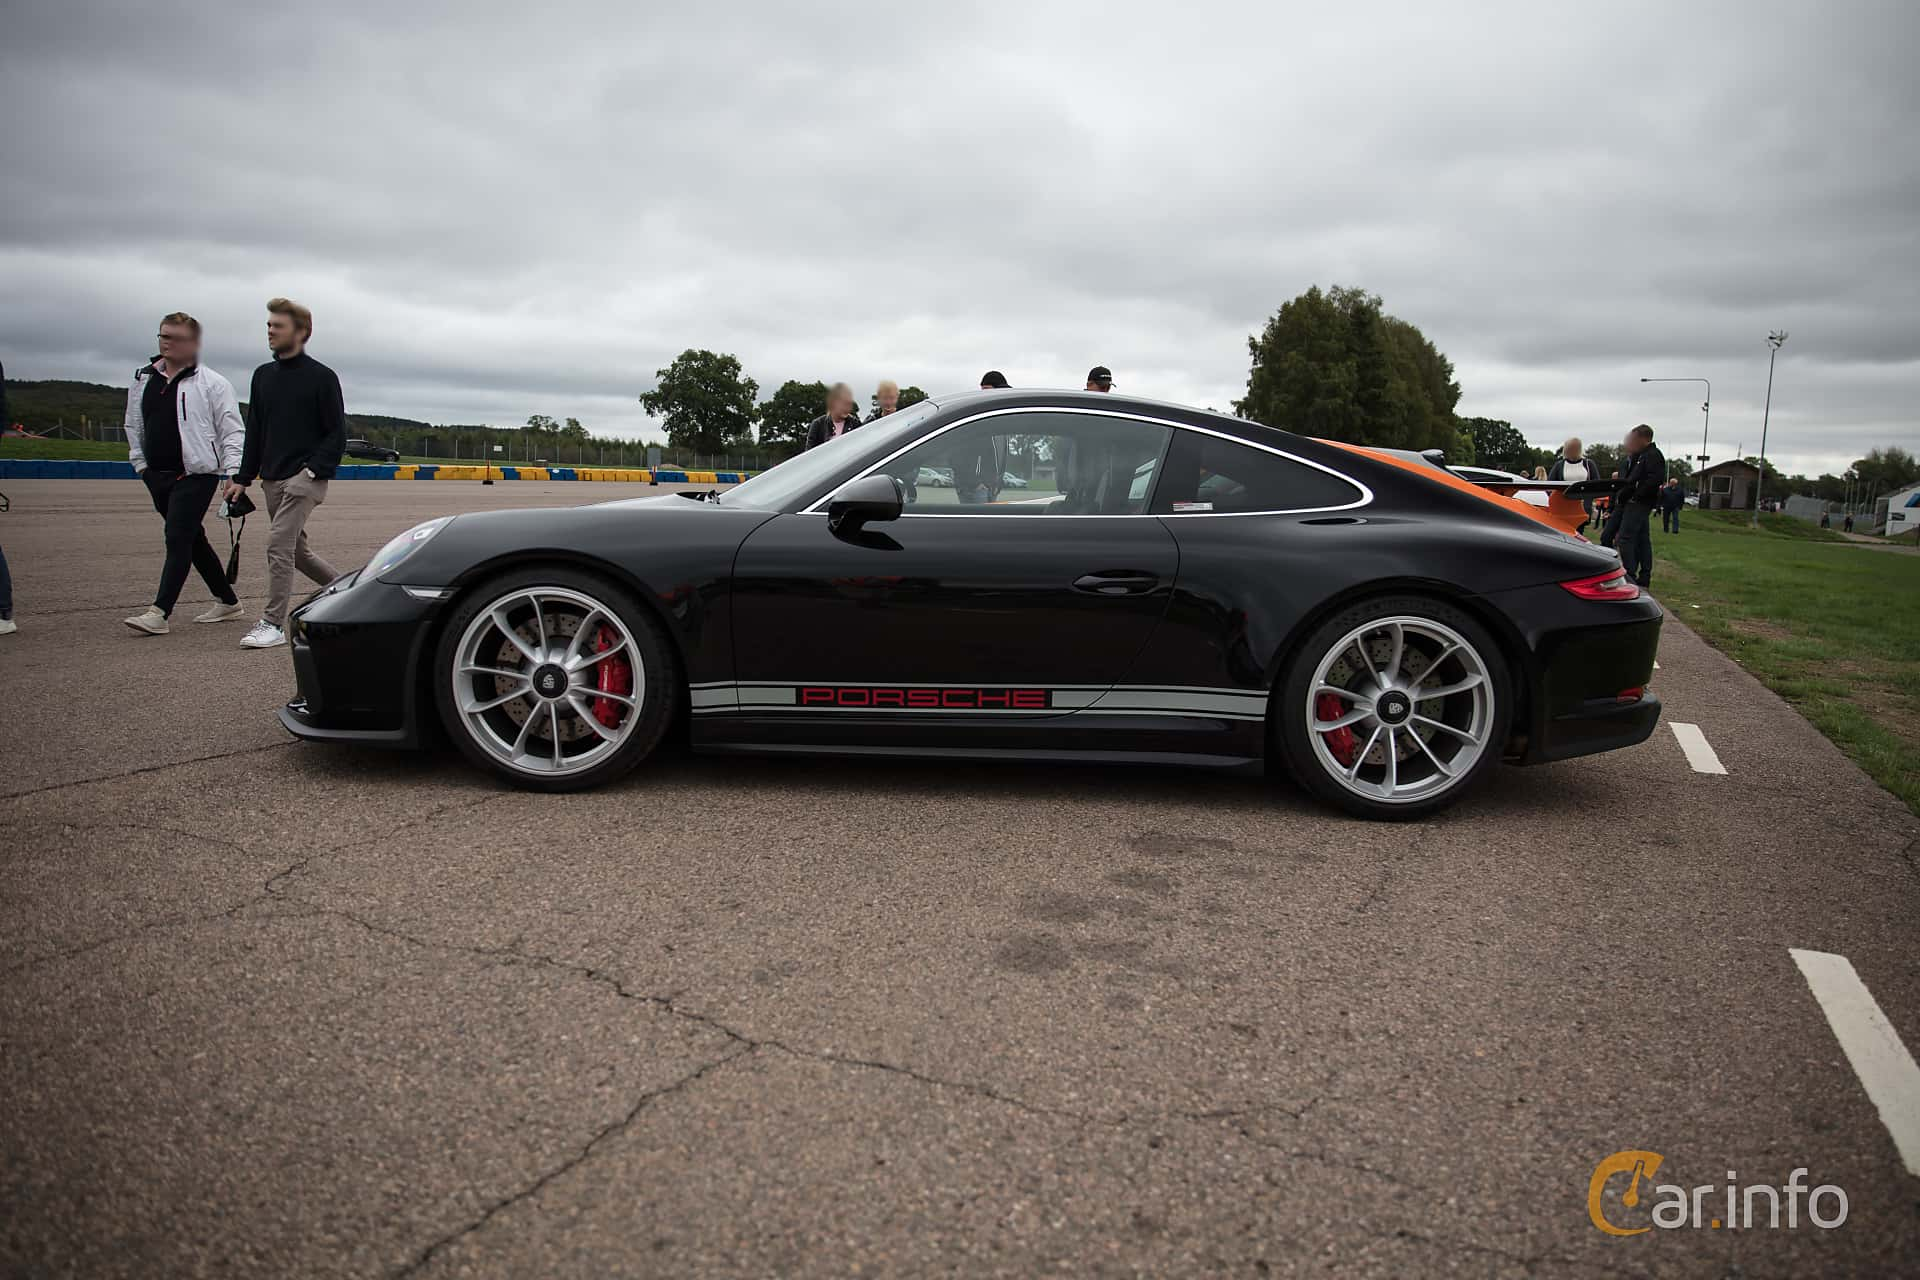 Porsche 911 GT3 4.0 H6 Manual, 500hp, 2018 at Autoropa Racing day Knutstorp 2018